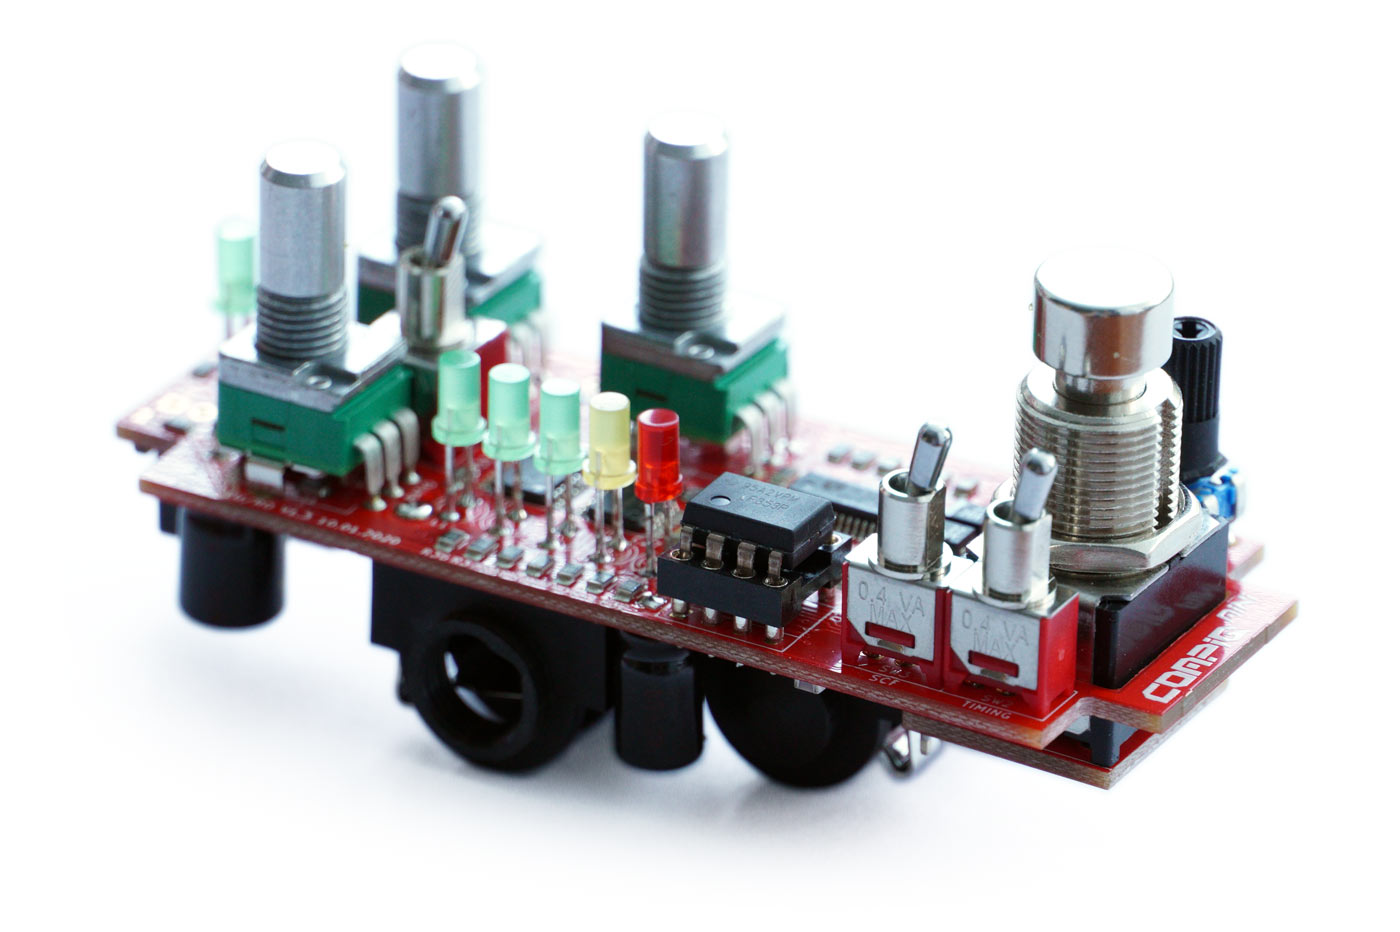 CIQ-2 CompIQ MINI Circuit Board